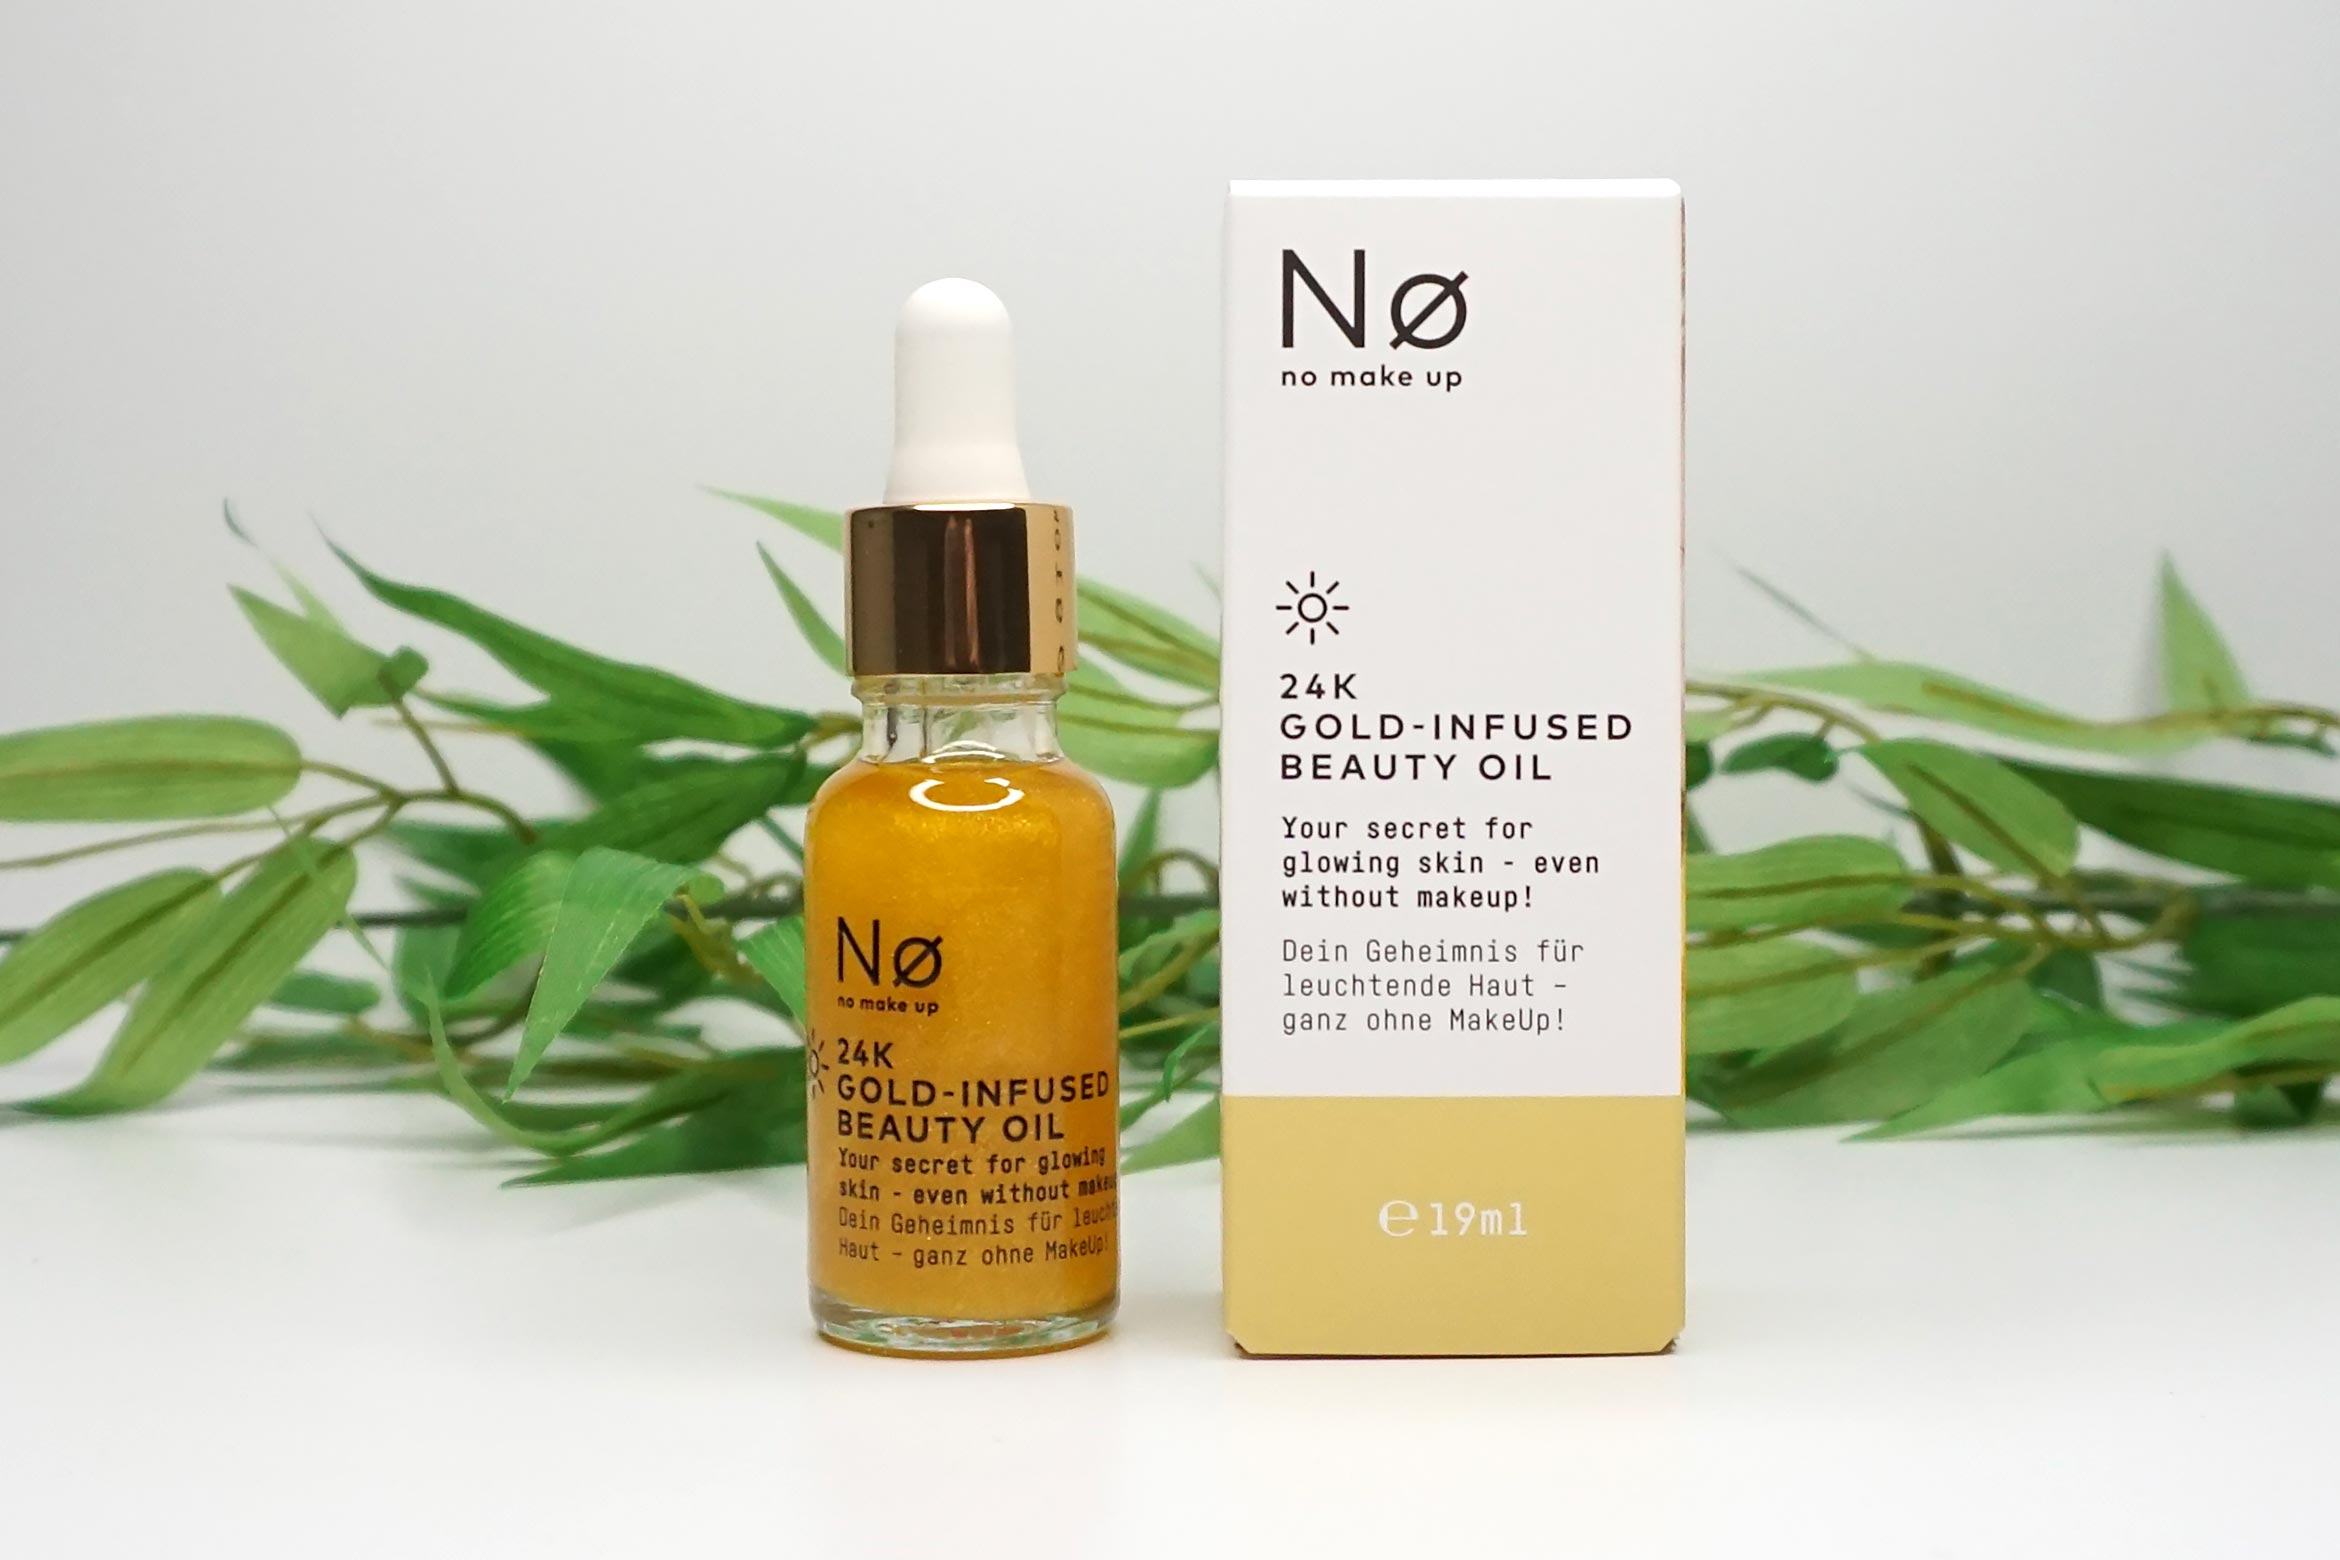 no-make-up-24k-gold-infused-beauty-oil-review